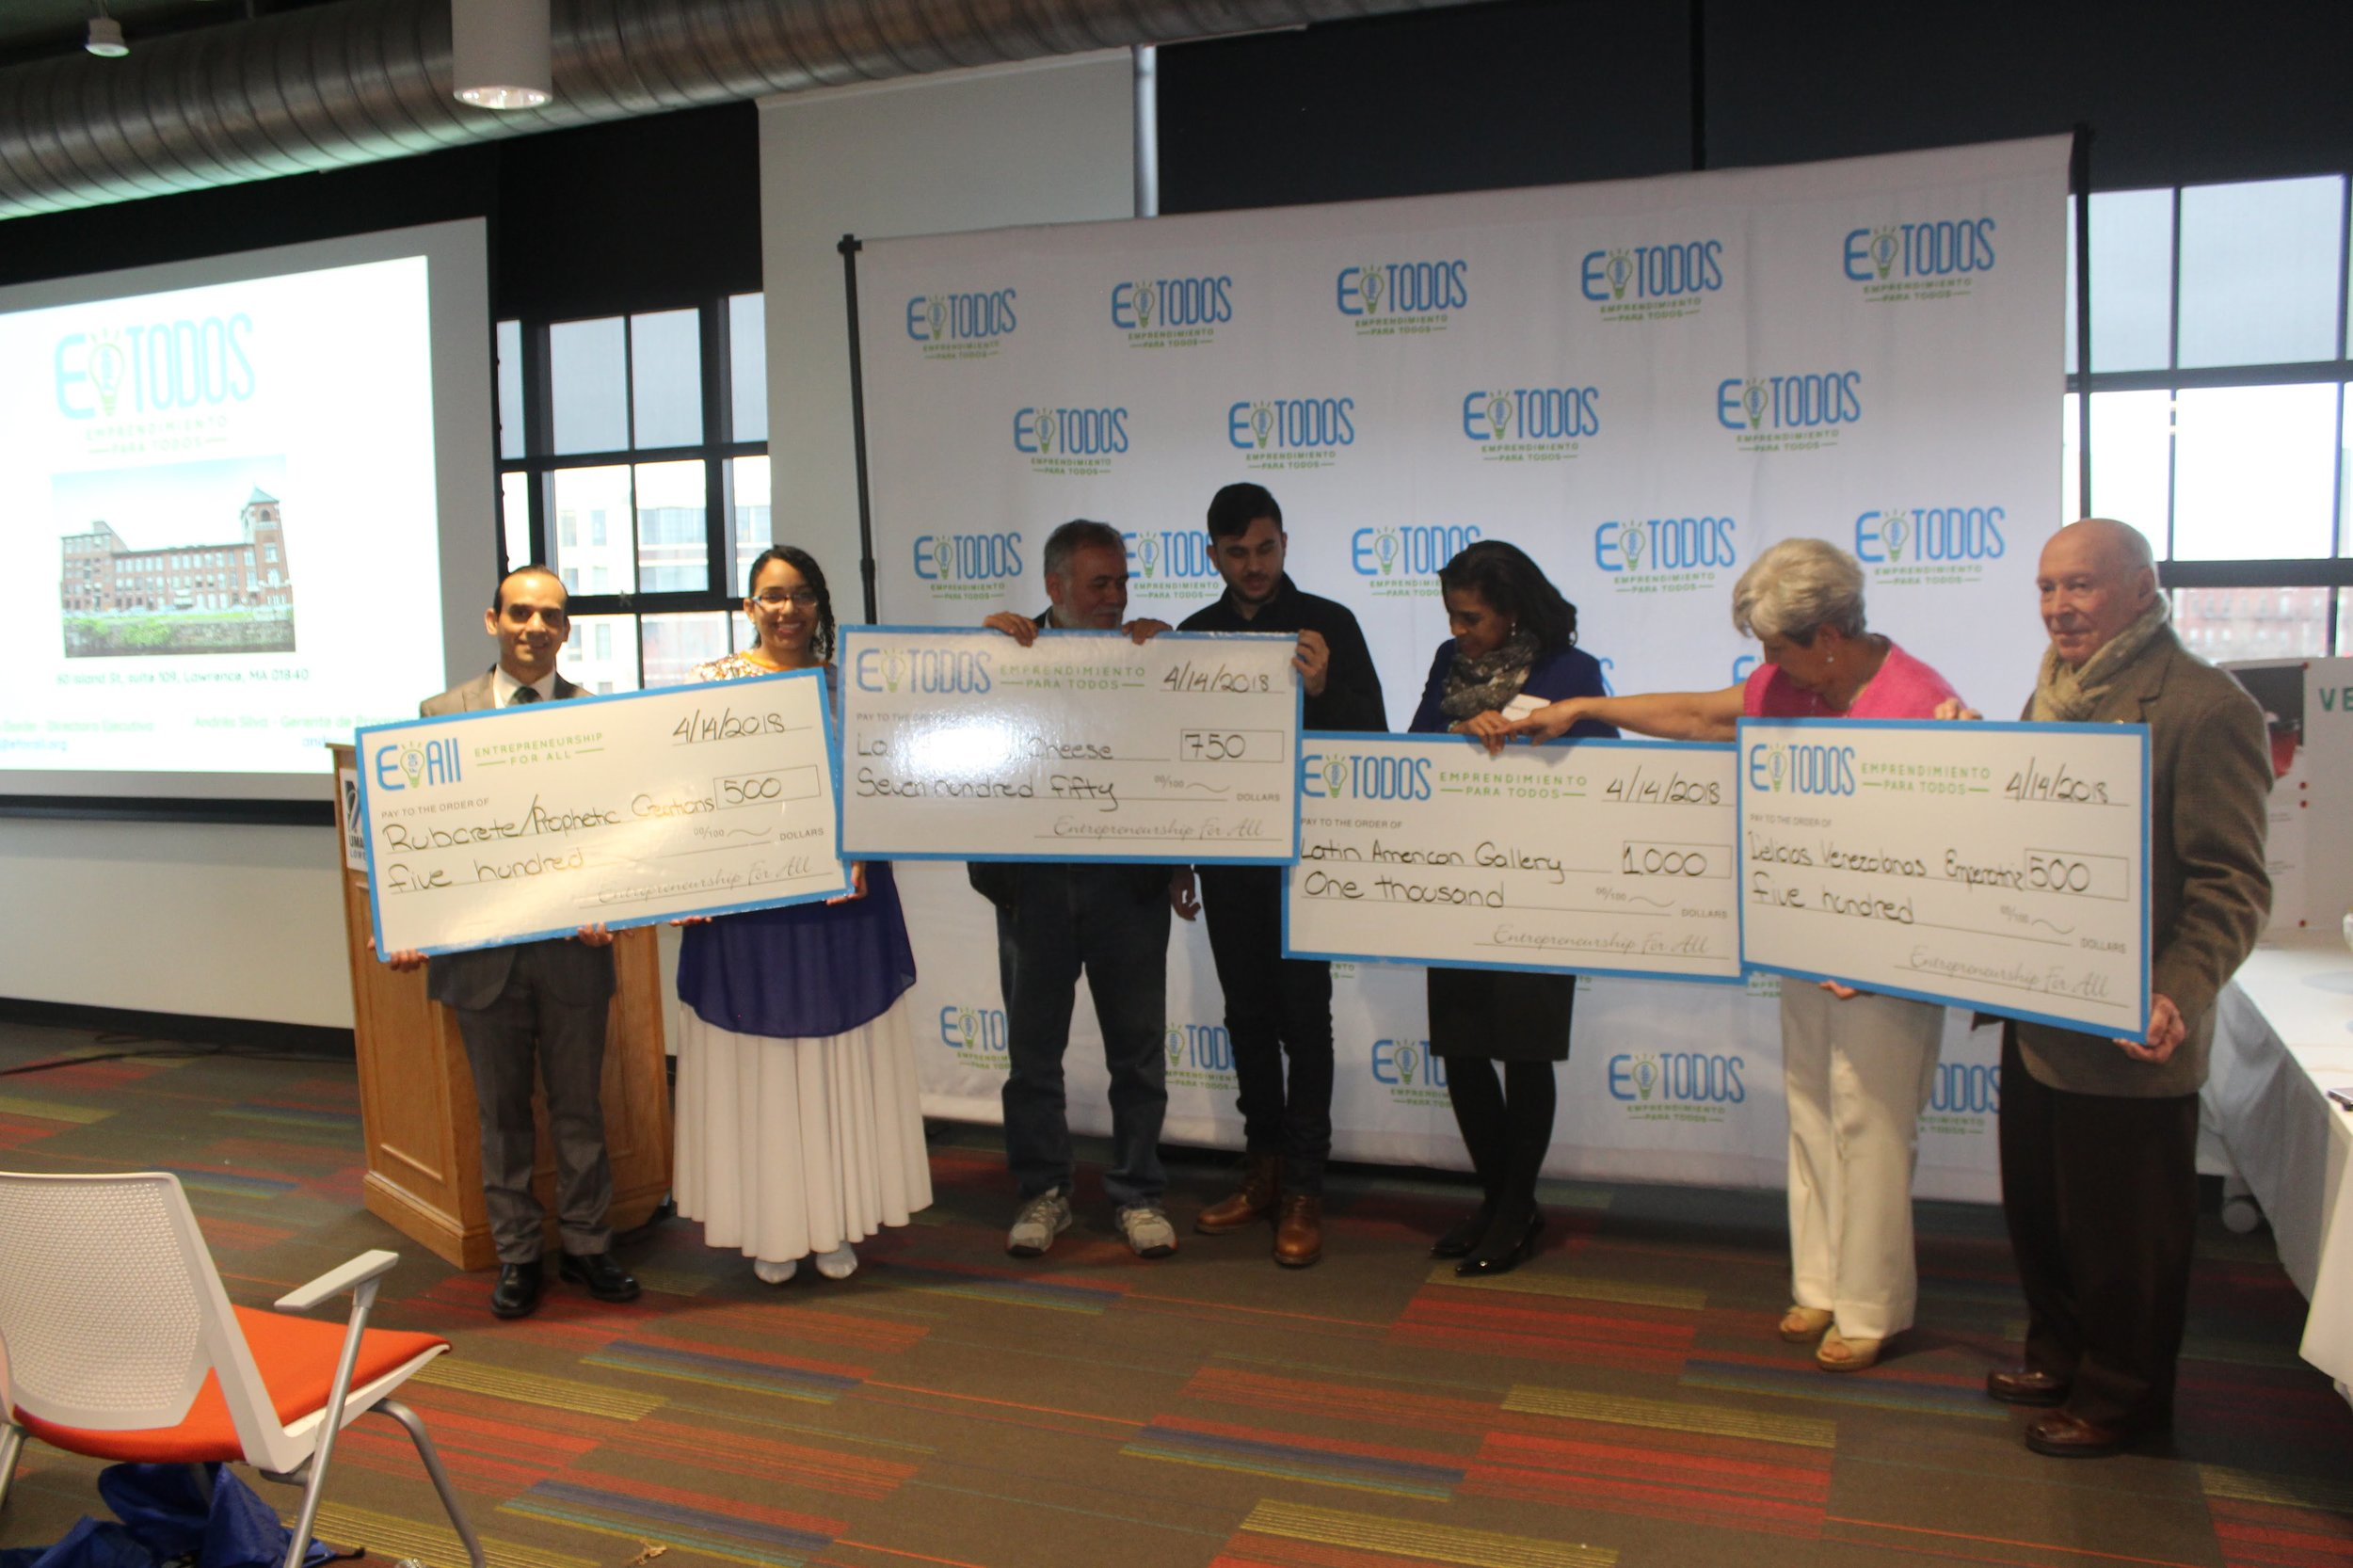 WCC Lowell partnered with EparaTodos (EforAll) to provide the 1st Spanish-speaking contest in Lowell